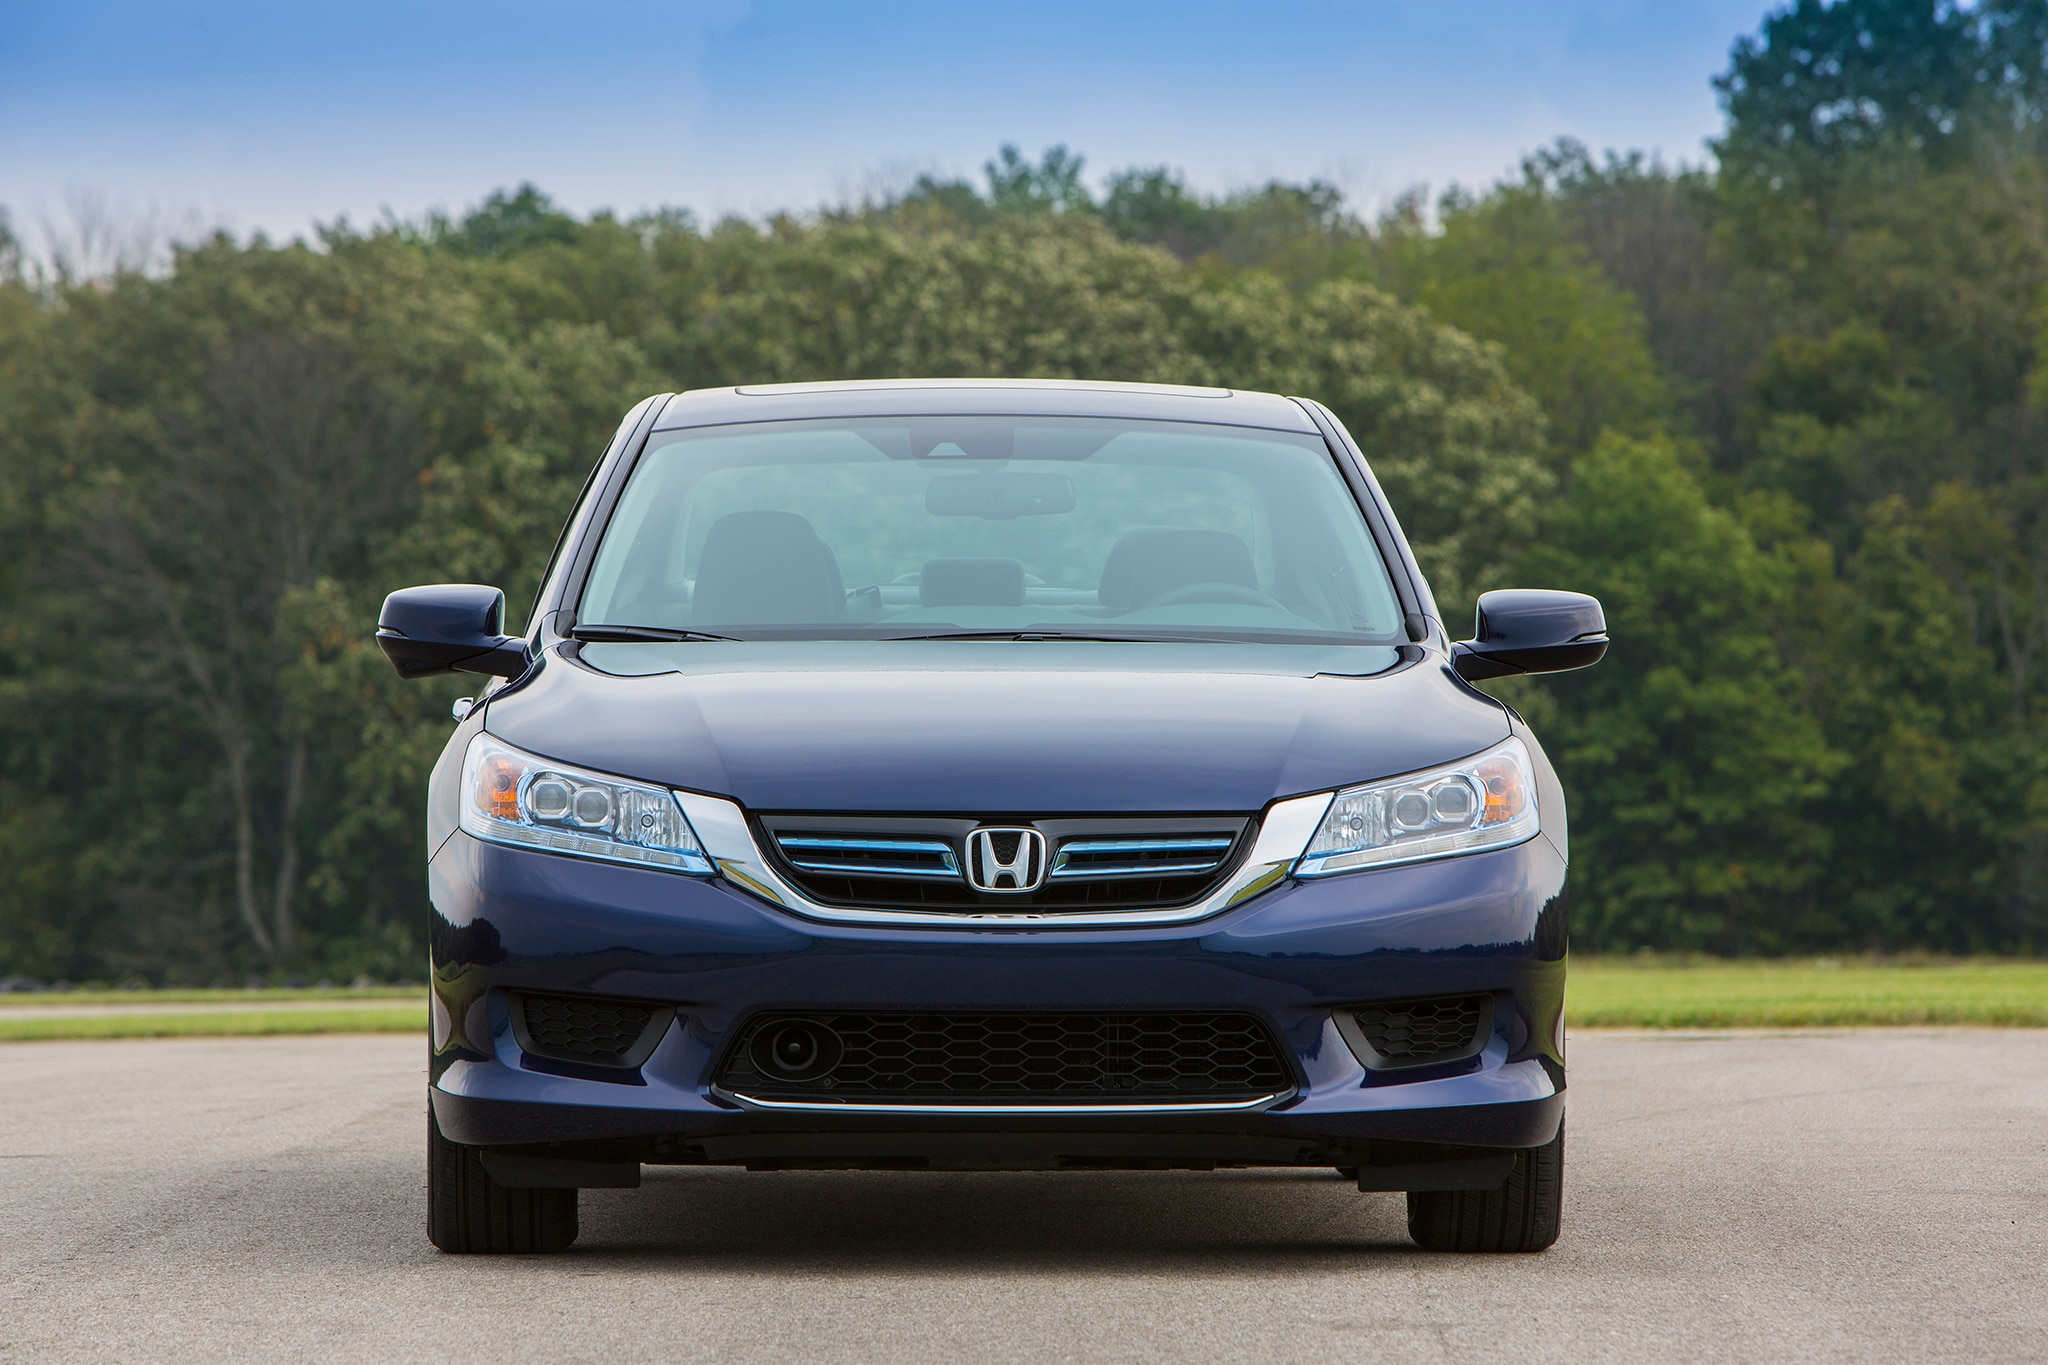 Honda Civic Family Models amp Price  Honda